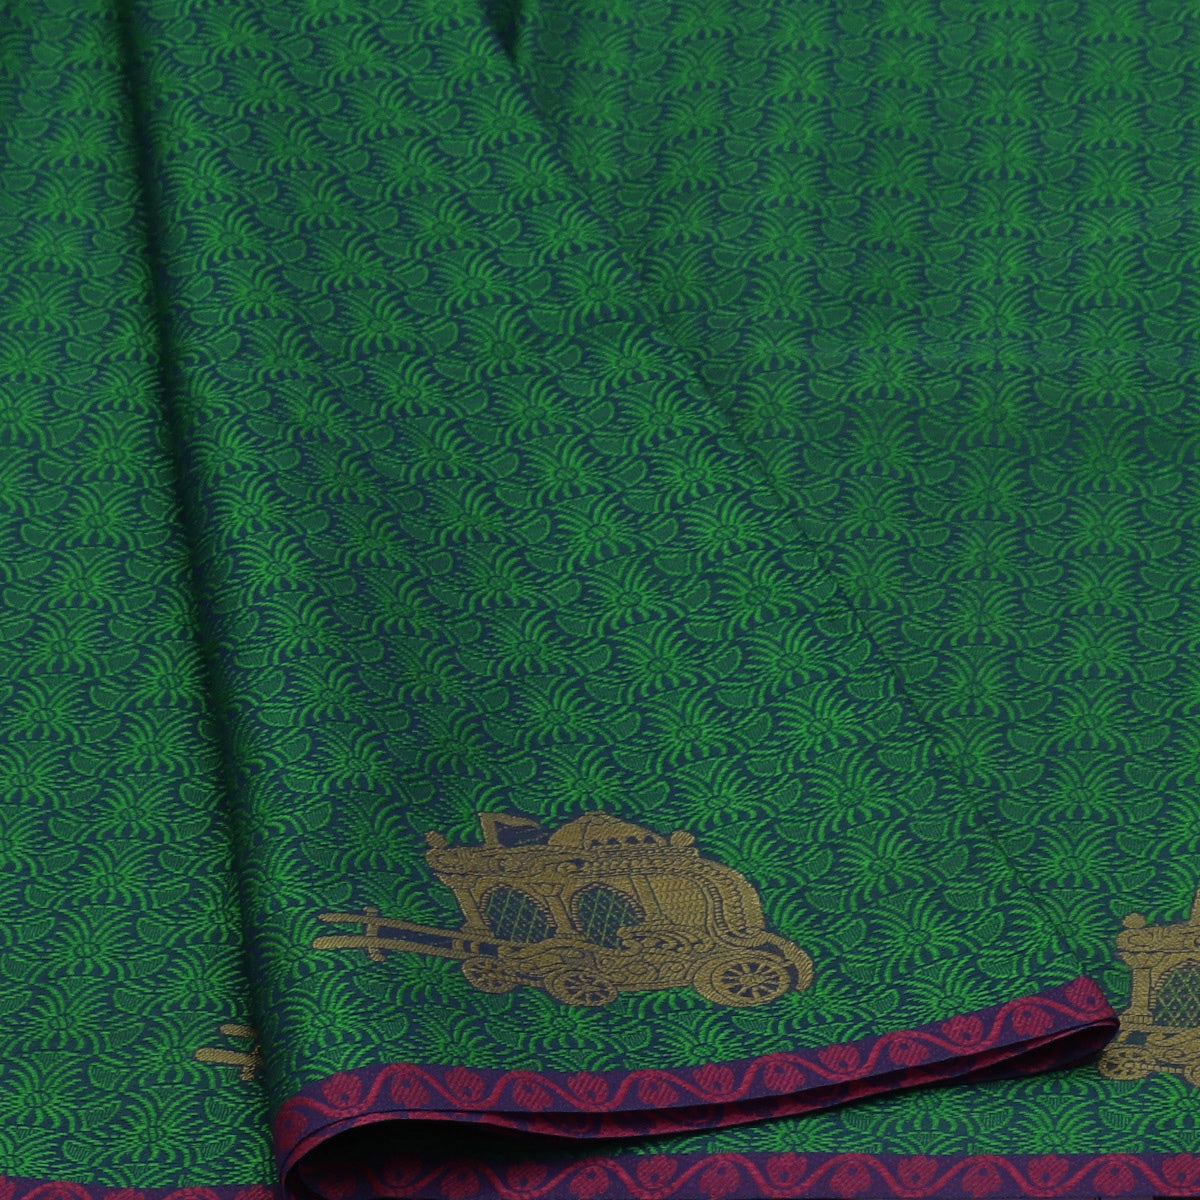 Banarasi Kora Muslin Saree Green and Blue with Simple border